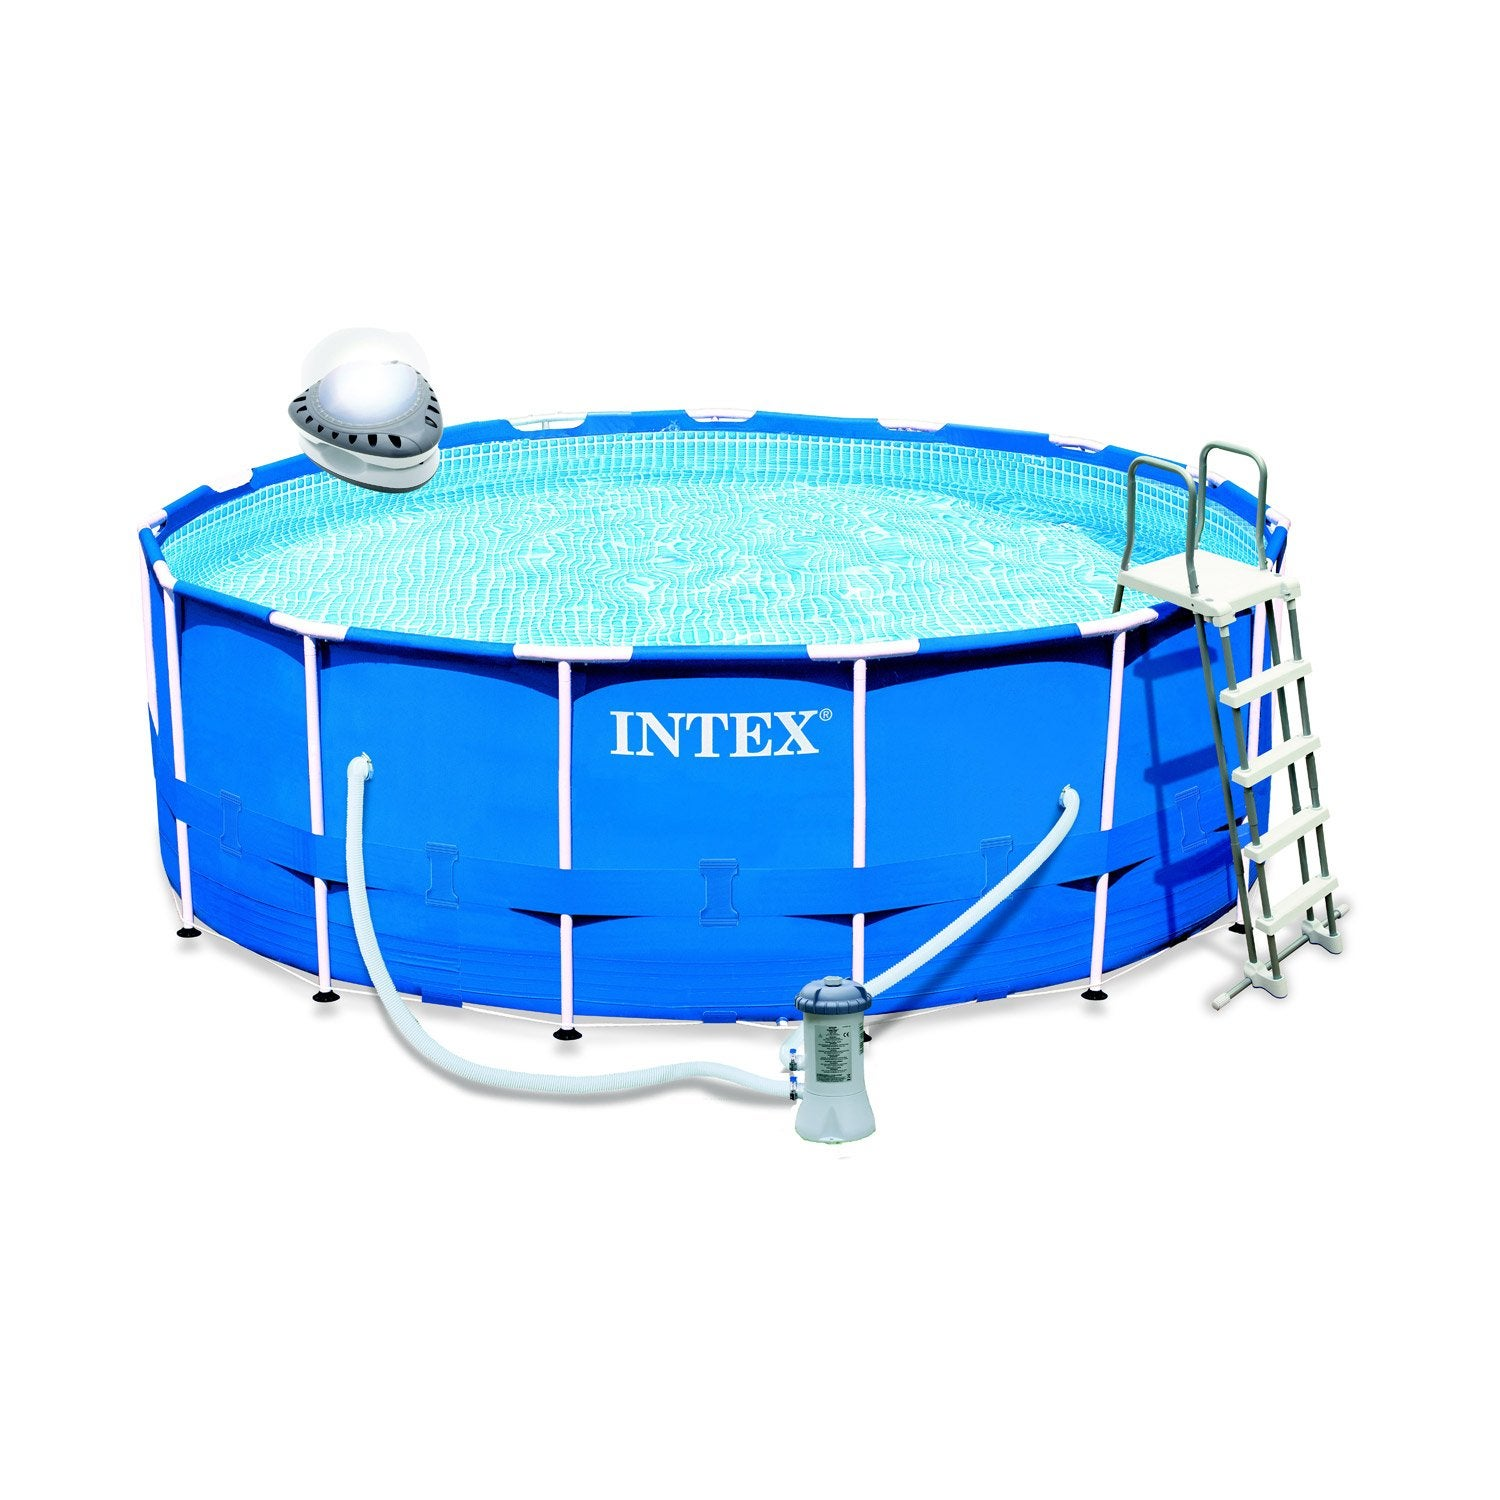 Piscine hors sol autoportante tubulaire ultra silver intex for Piscine hors sol 4 57x1 22 m